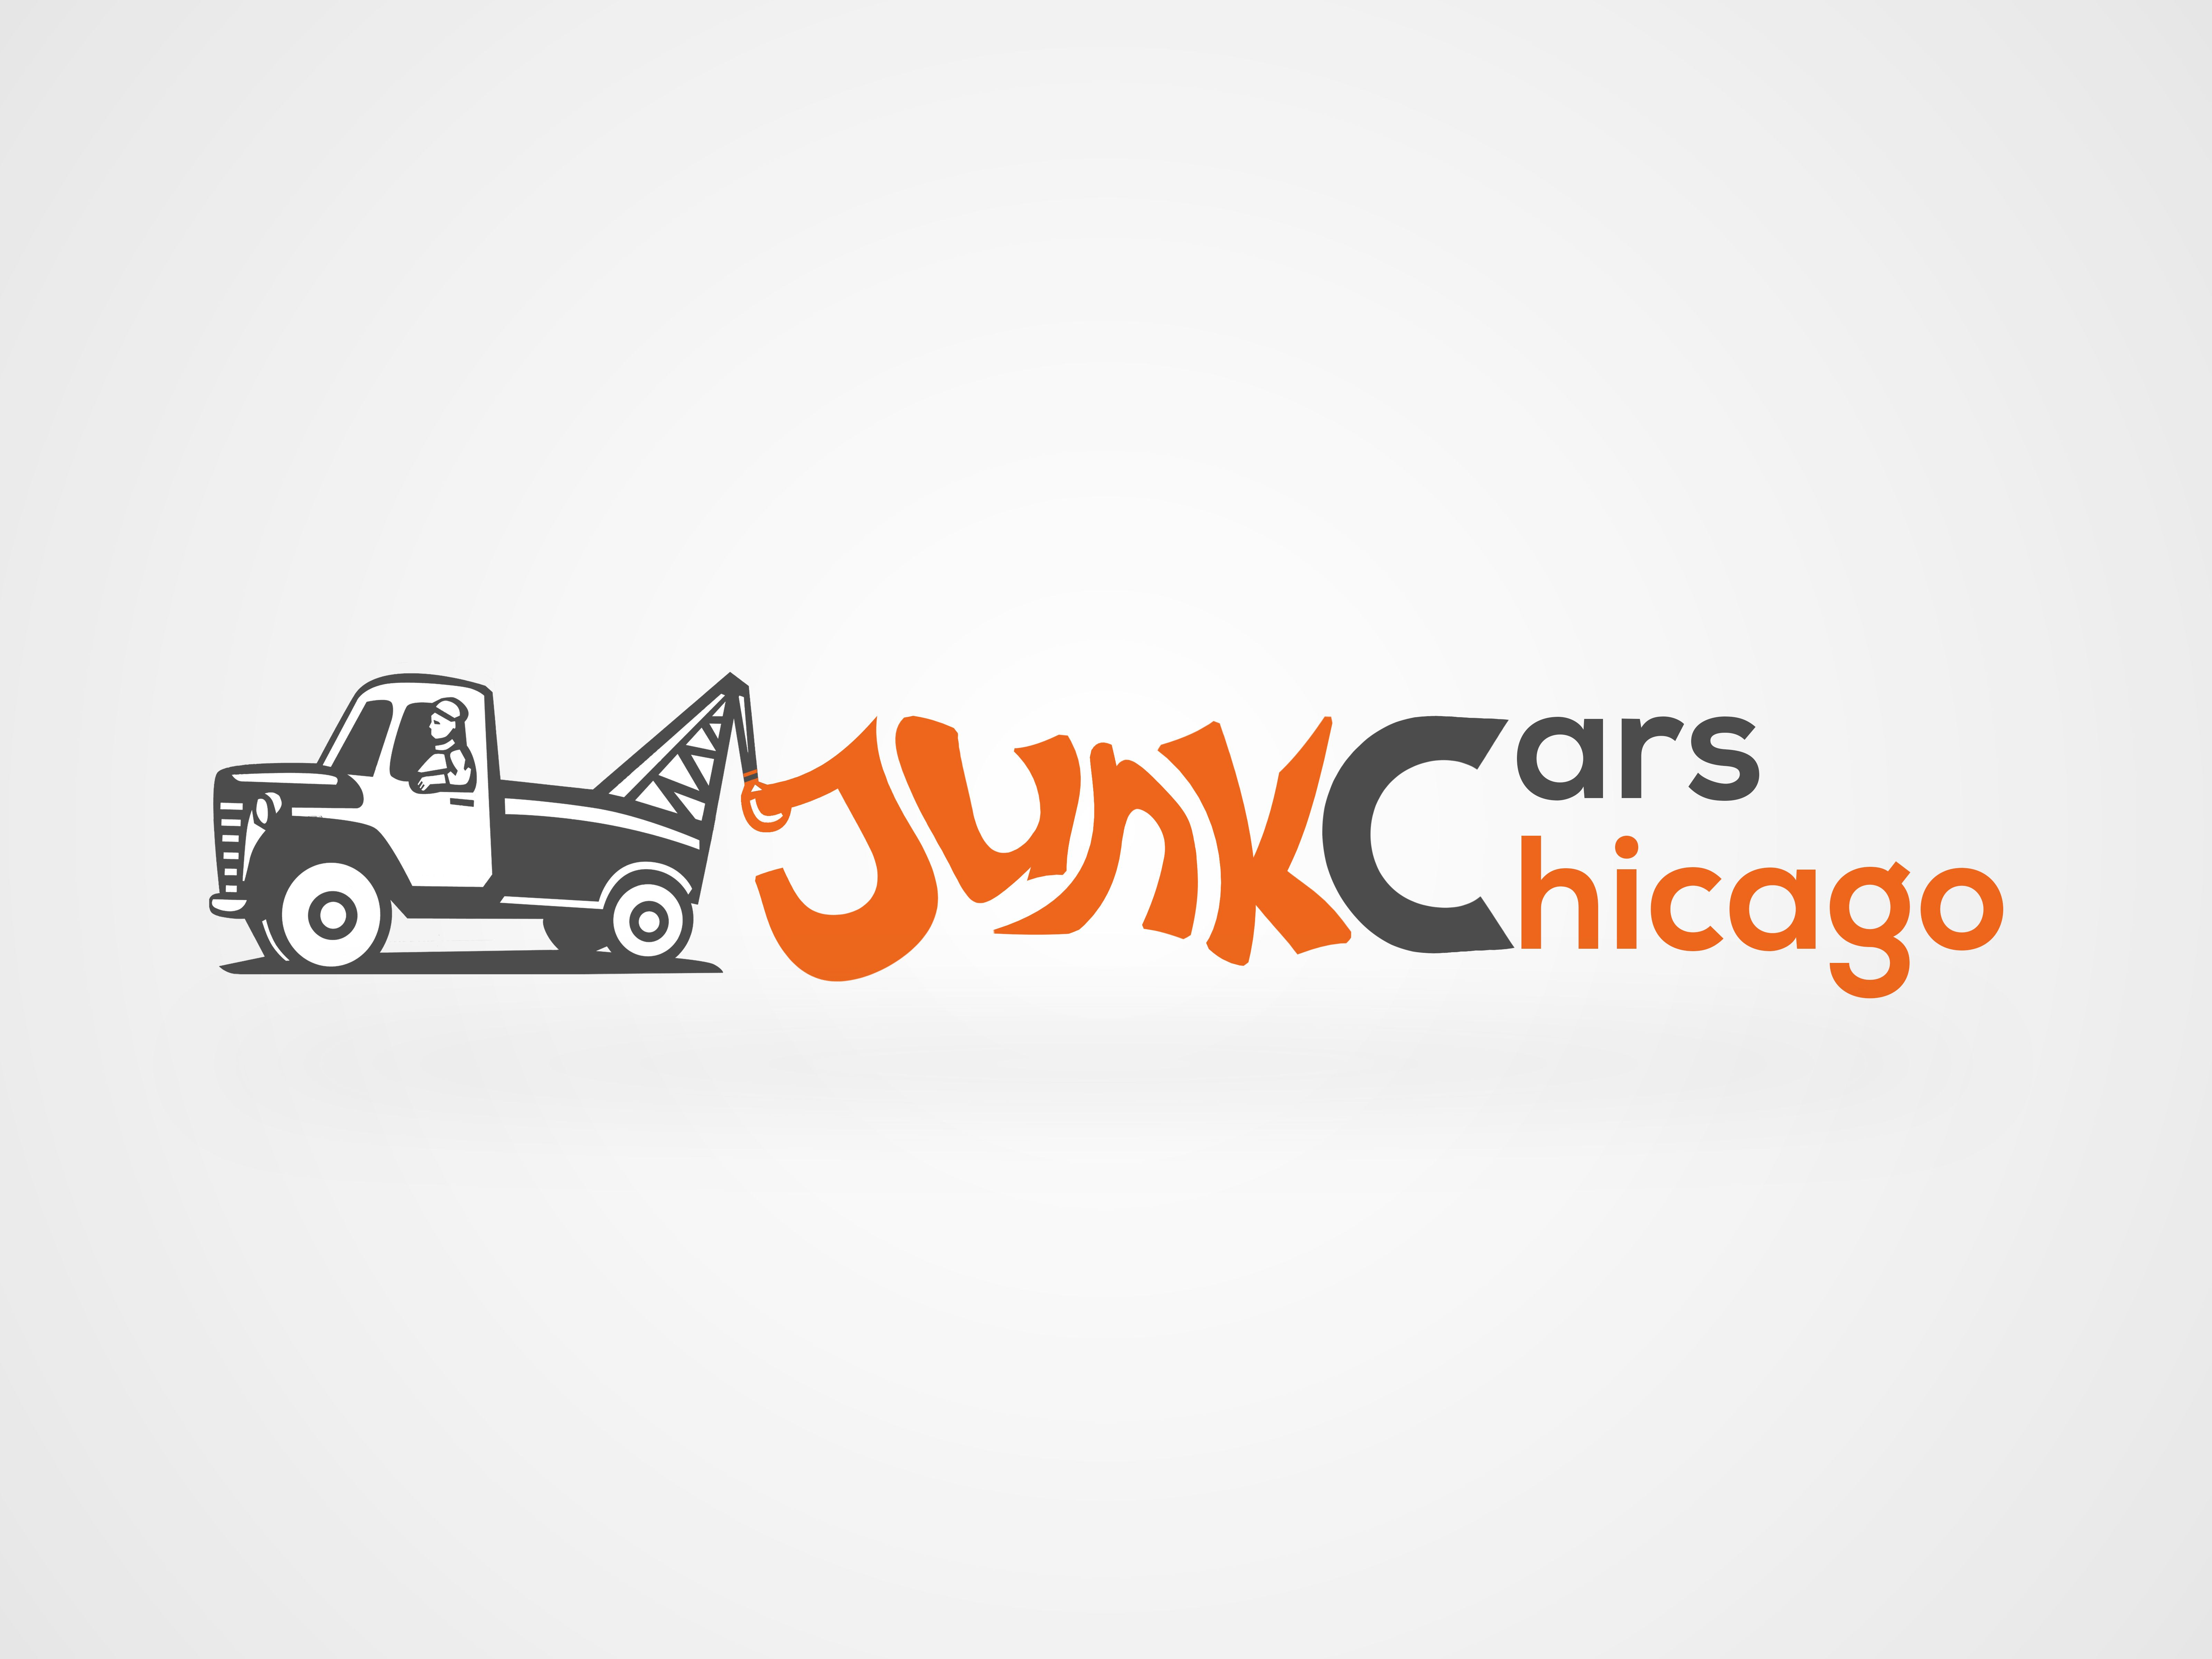 cash for junk cars chicago. we buy wrecked vehicles in chicago ...